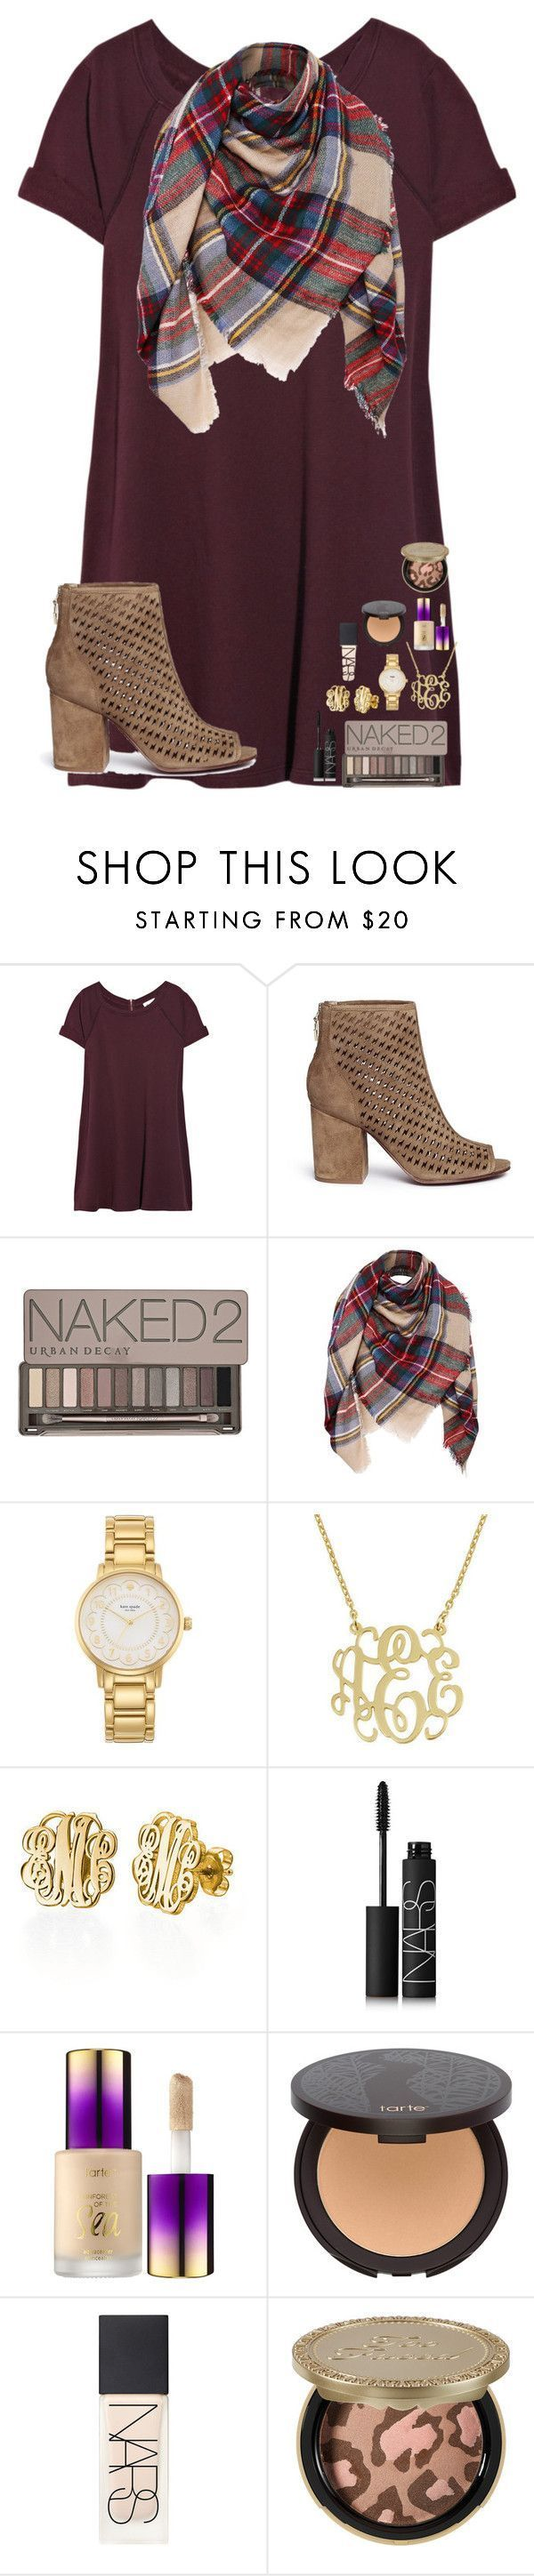 what shoes to wear with maroon dress 50+ best outfits